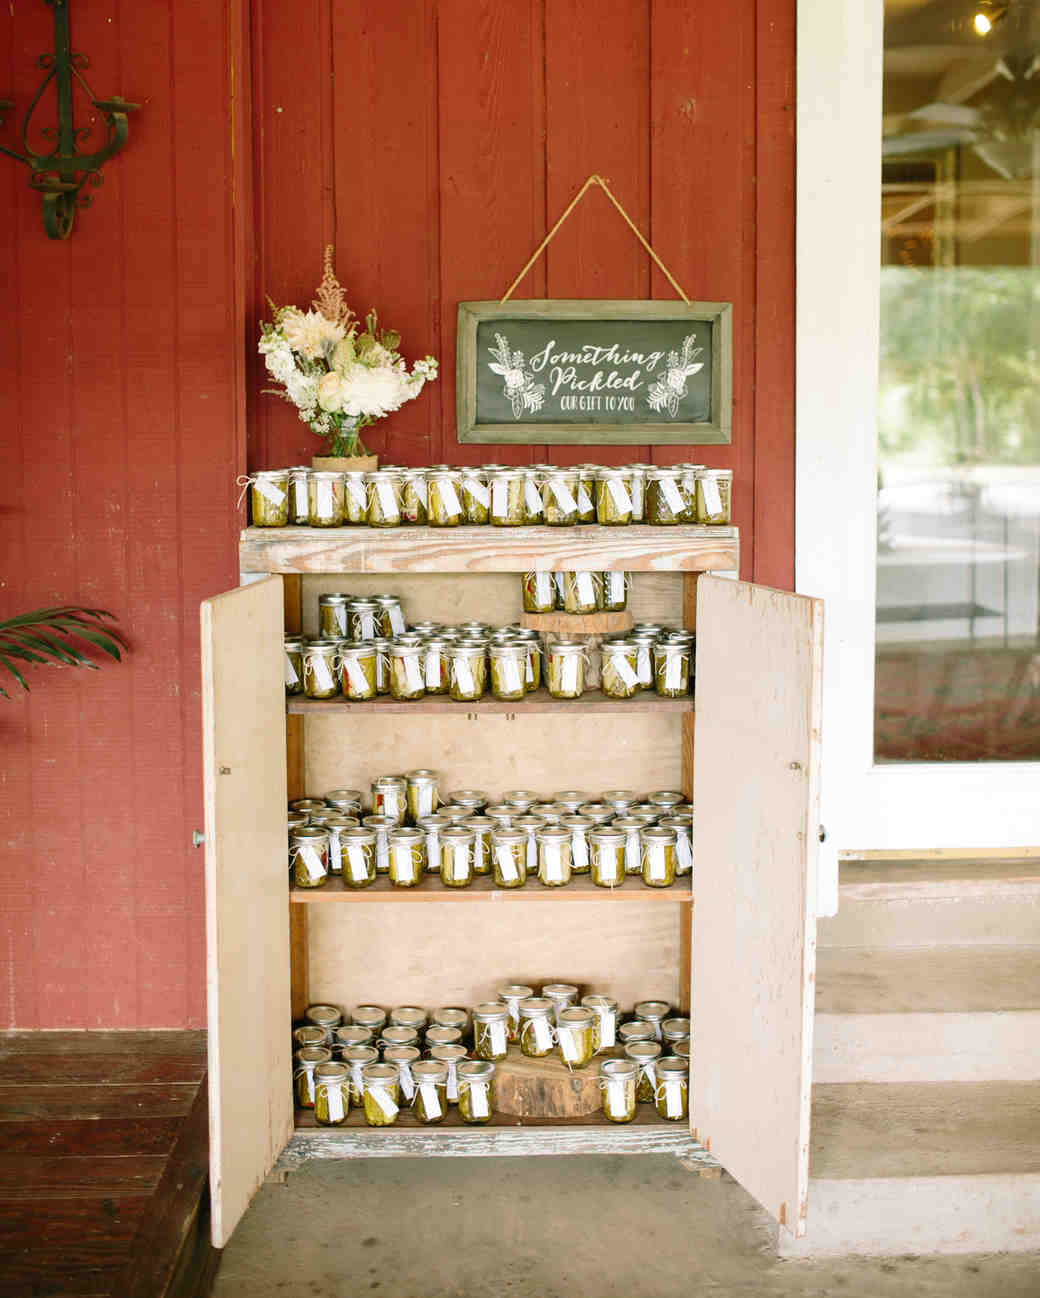 spicy pickles edible wedding favors